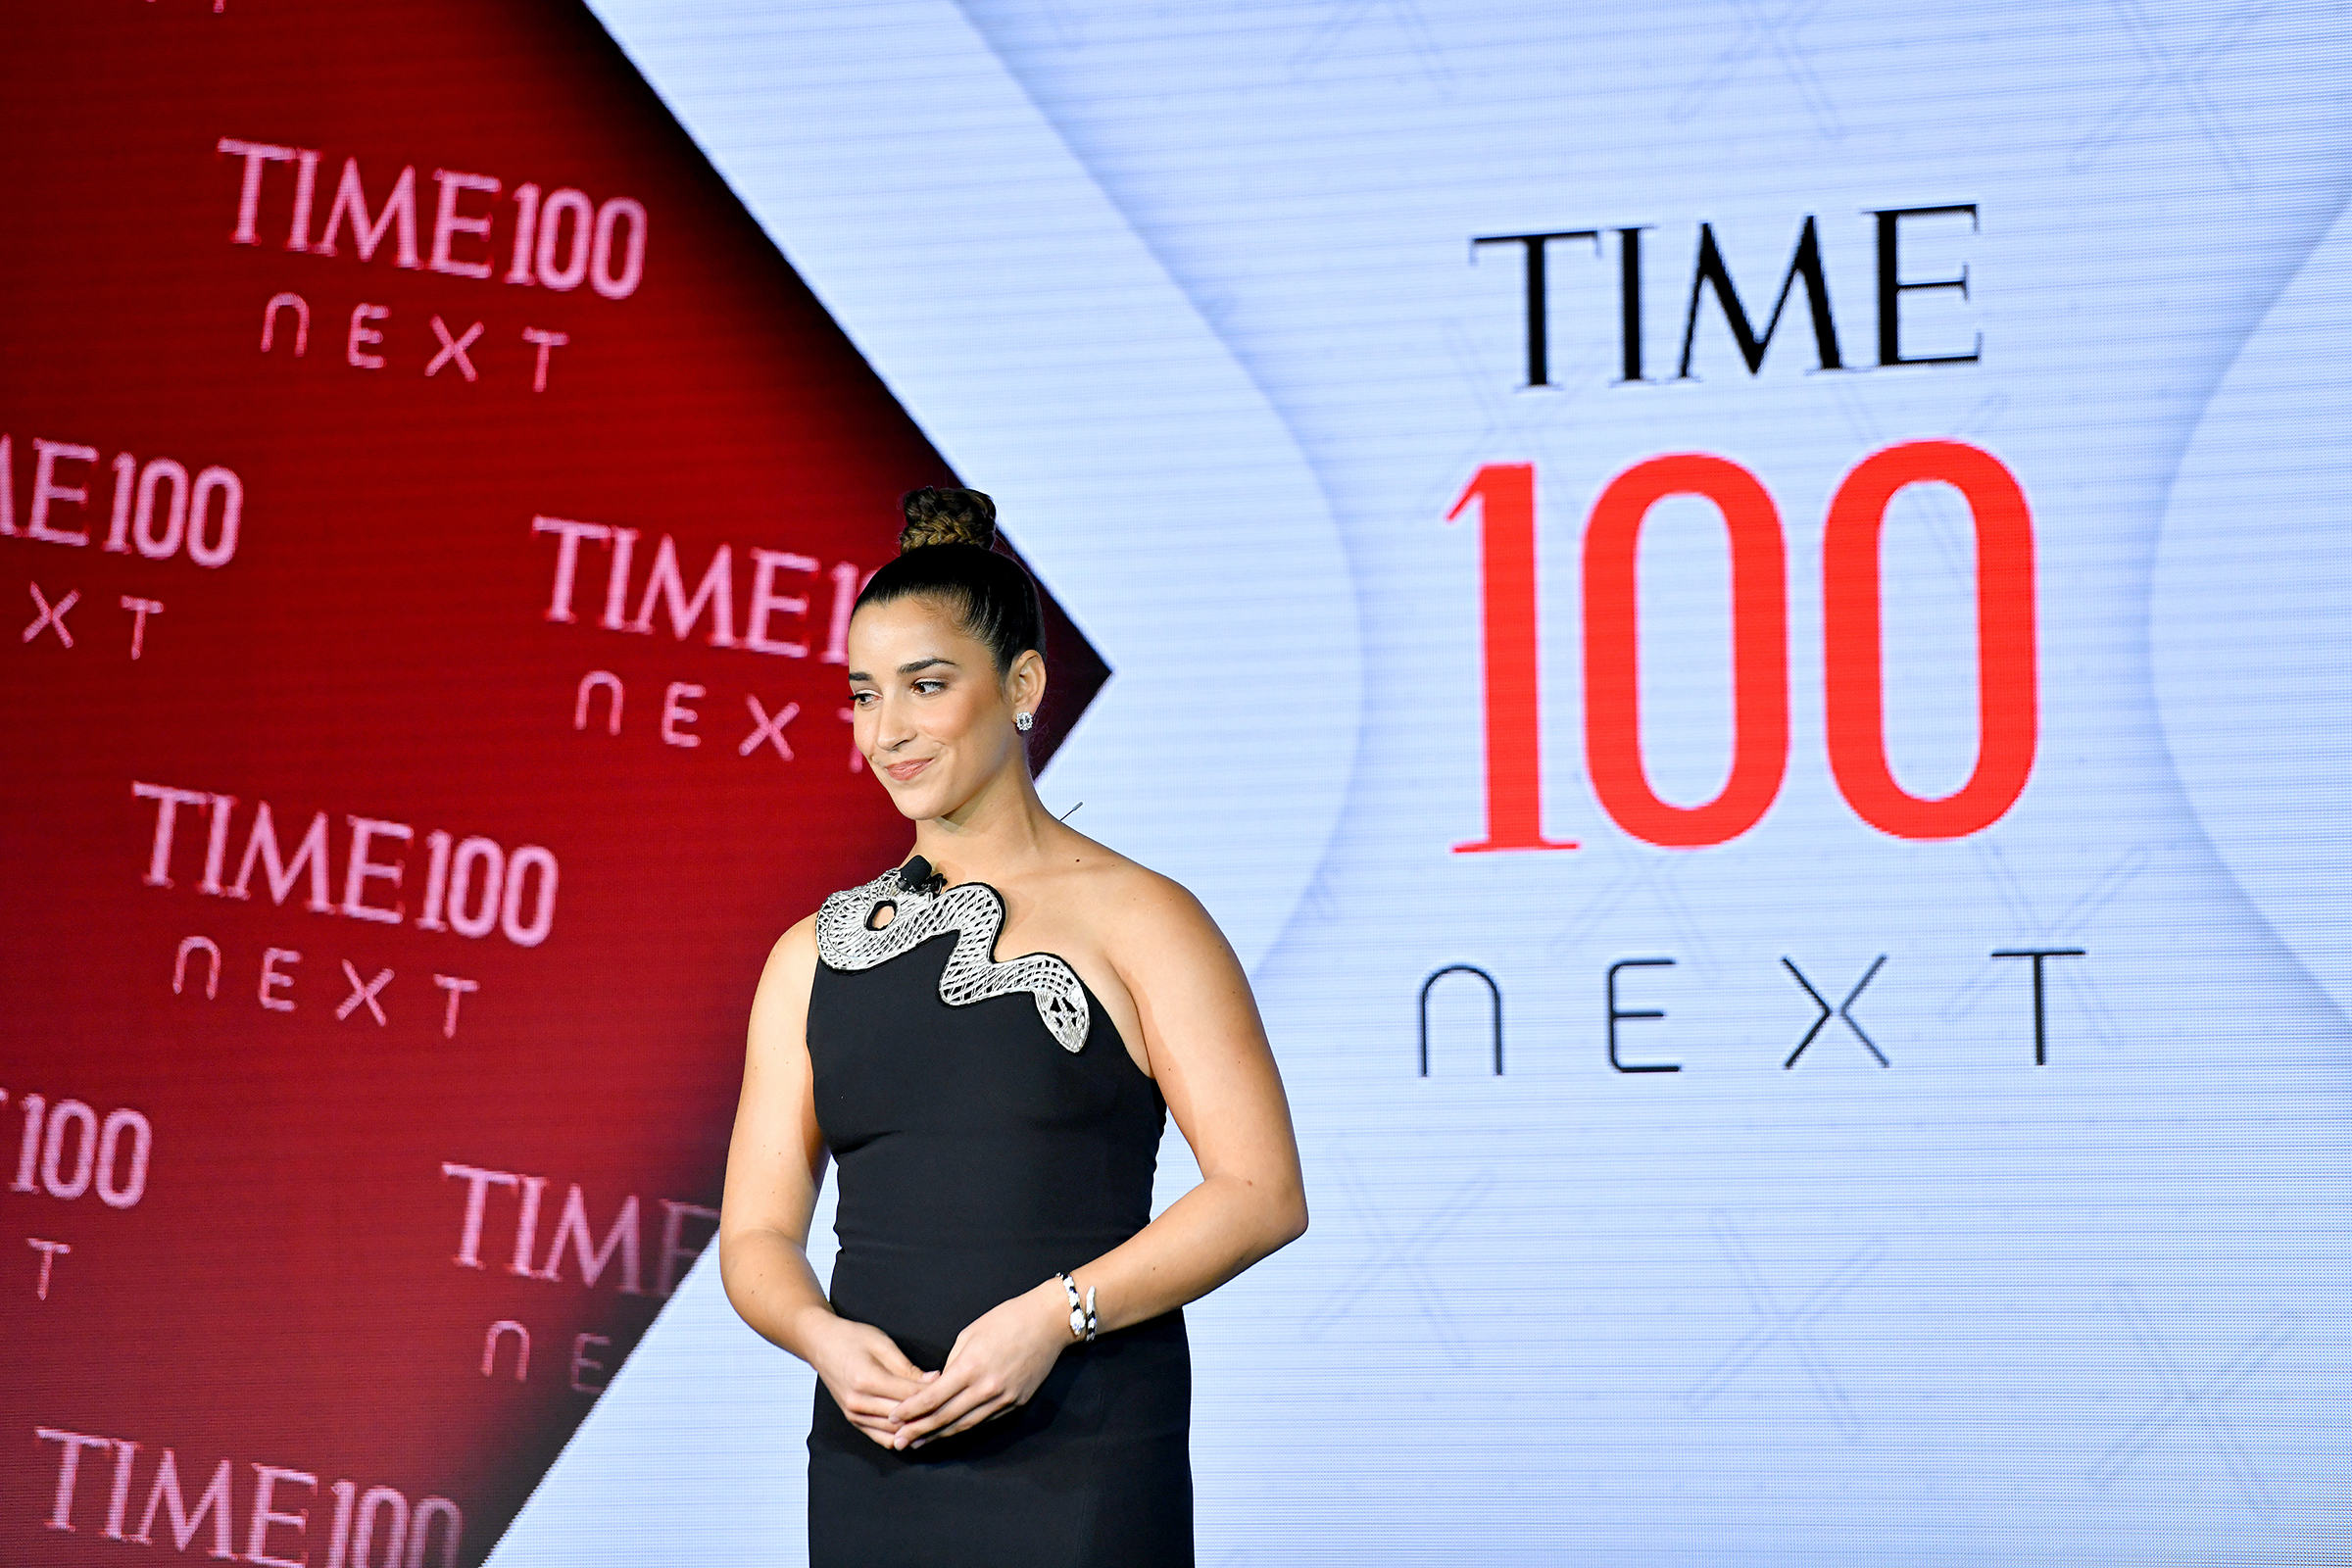 Aly Raisman speaks onstage during TIME 100 Next 2019 at Pier 17 in New York on Nov. 14, 2019.